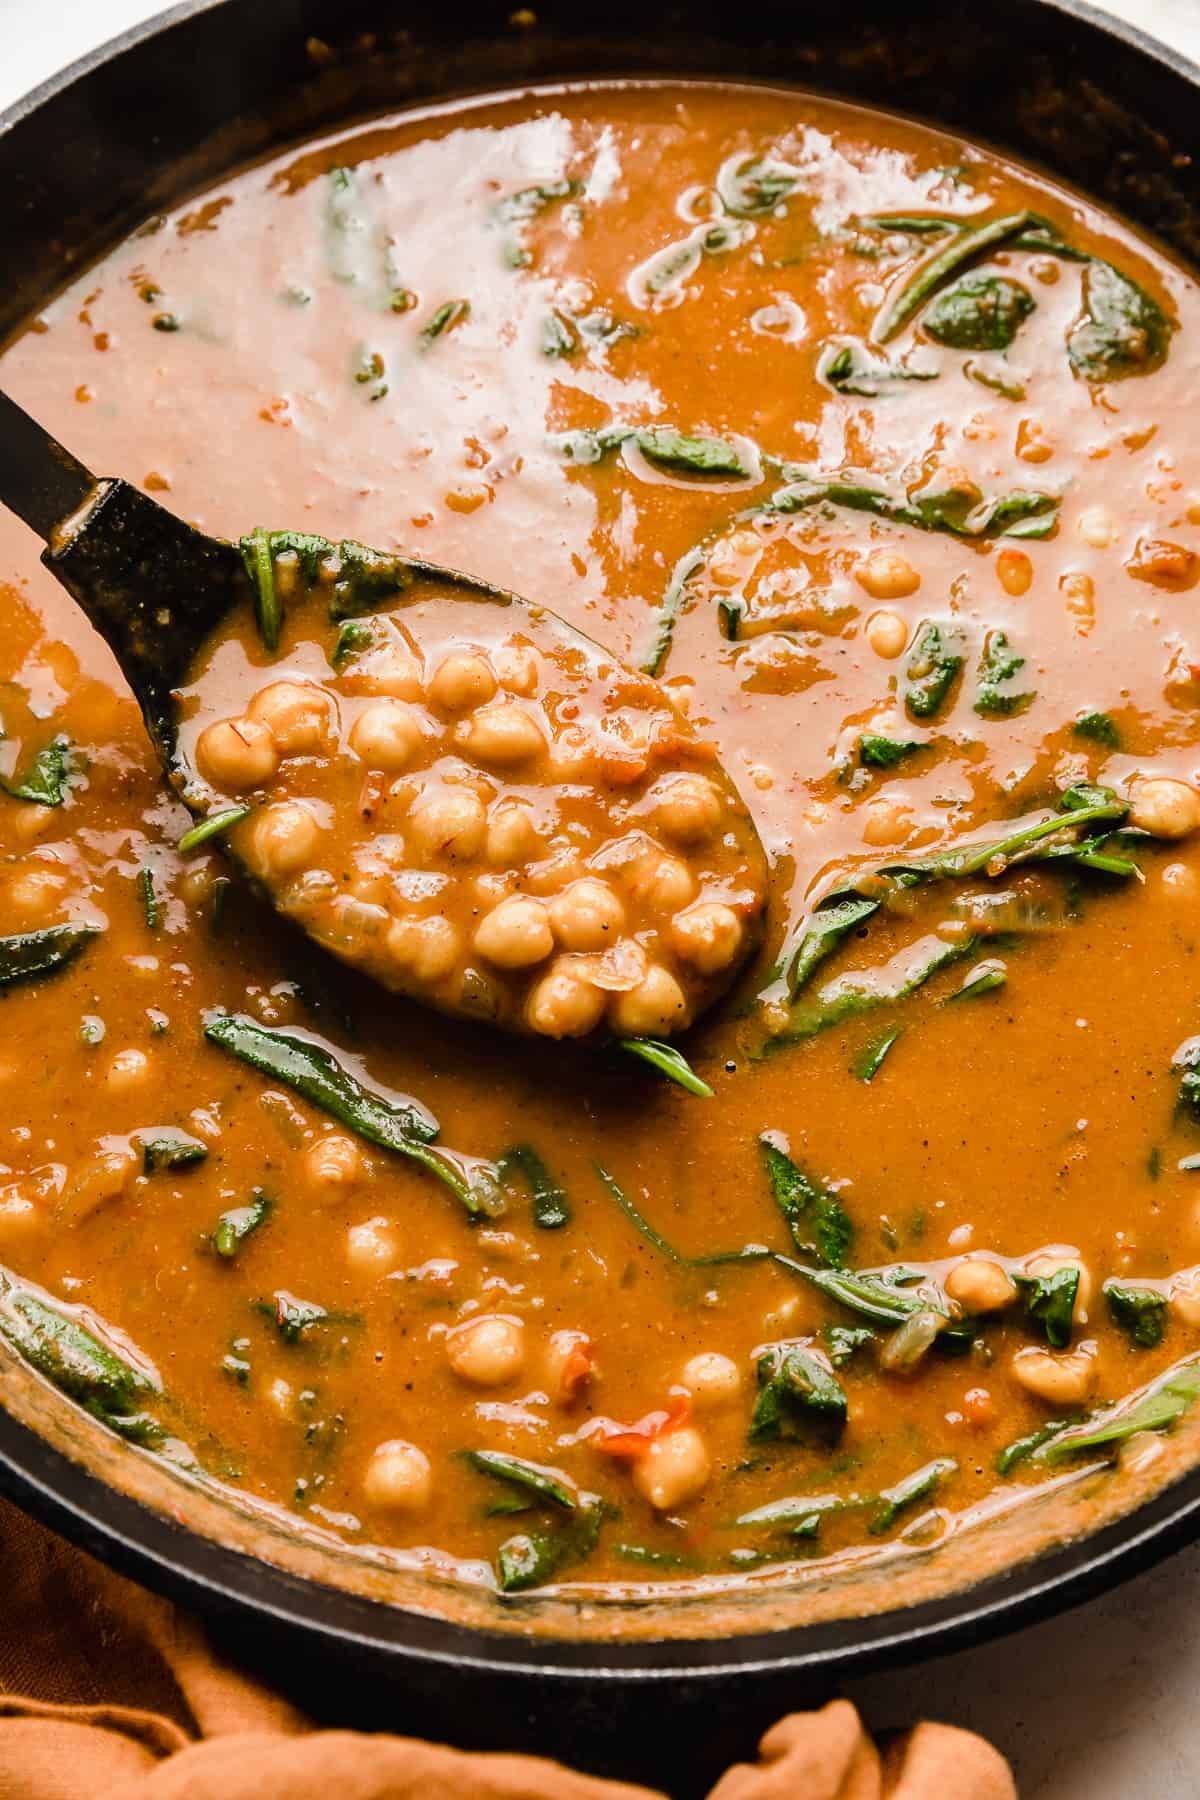 A large spoon scooping up Chickpea and Spinach Curry from a black skillet.